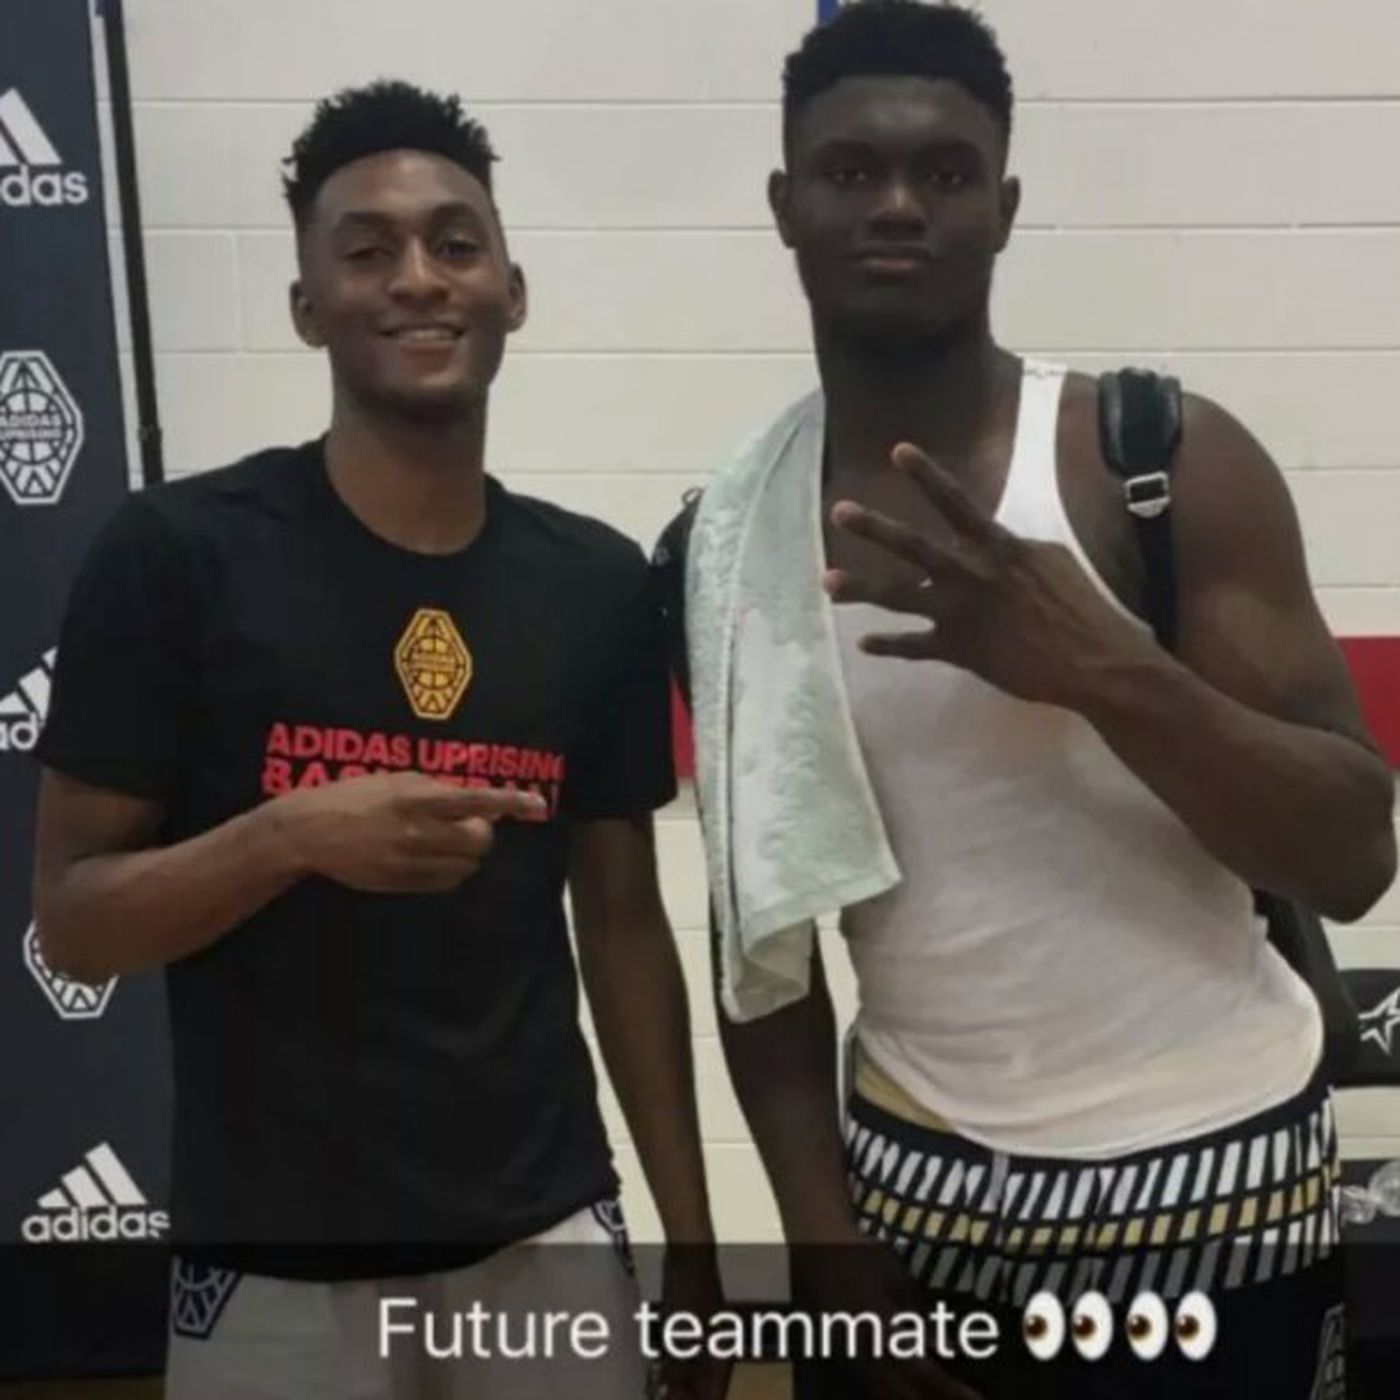 09cf1a10bb62 Zion Williamson might be a package deal with 5-star guard Immanuel Quickley  - SBNation.com